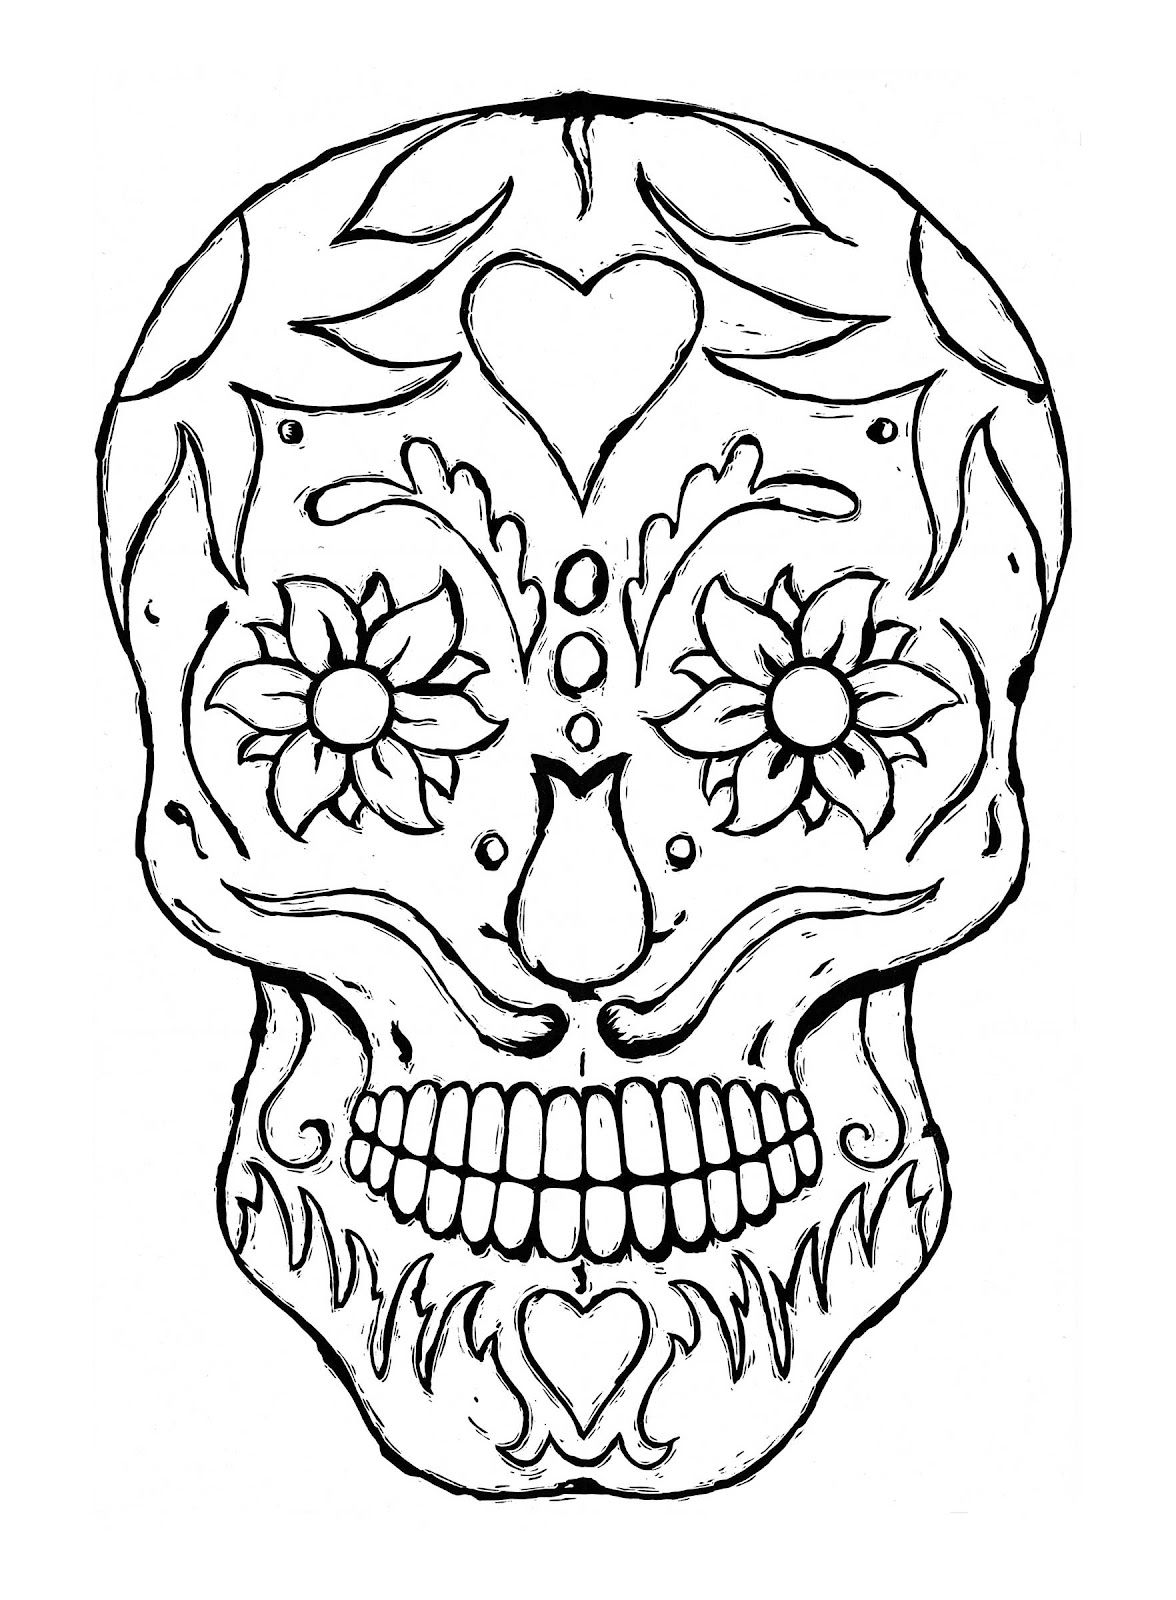 Halloween Coloring Pages Skulls. coloring pages for adults  HALLOWEEN COLORINGS COLORING